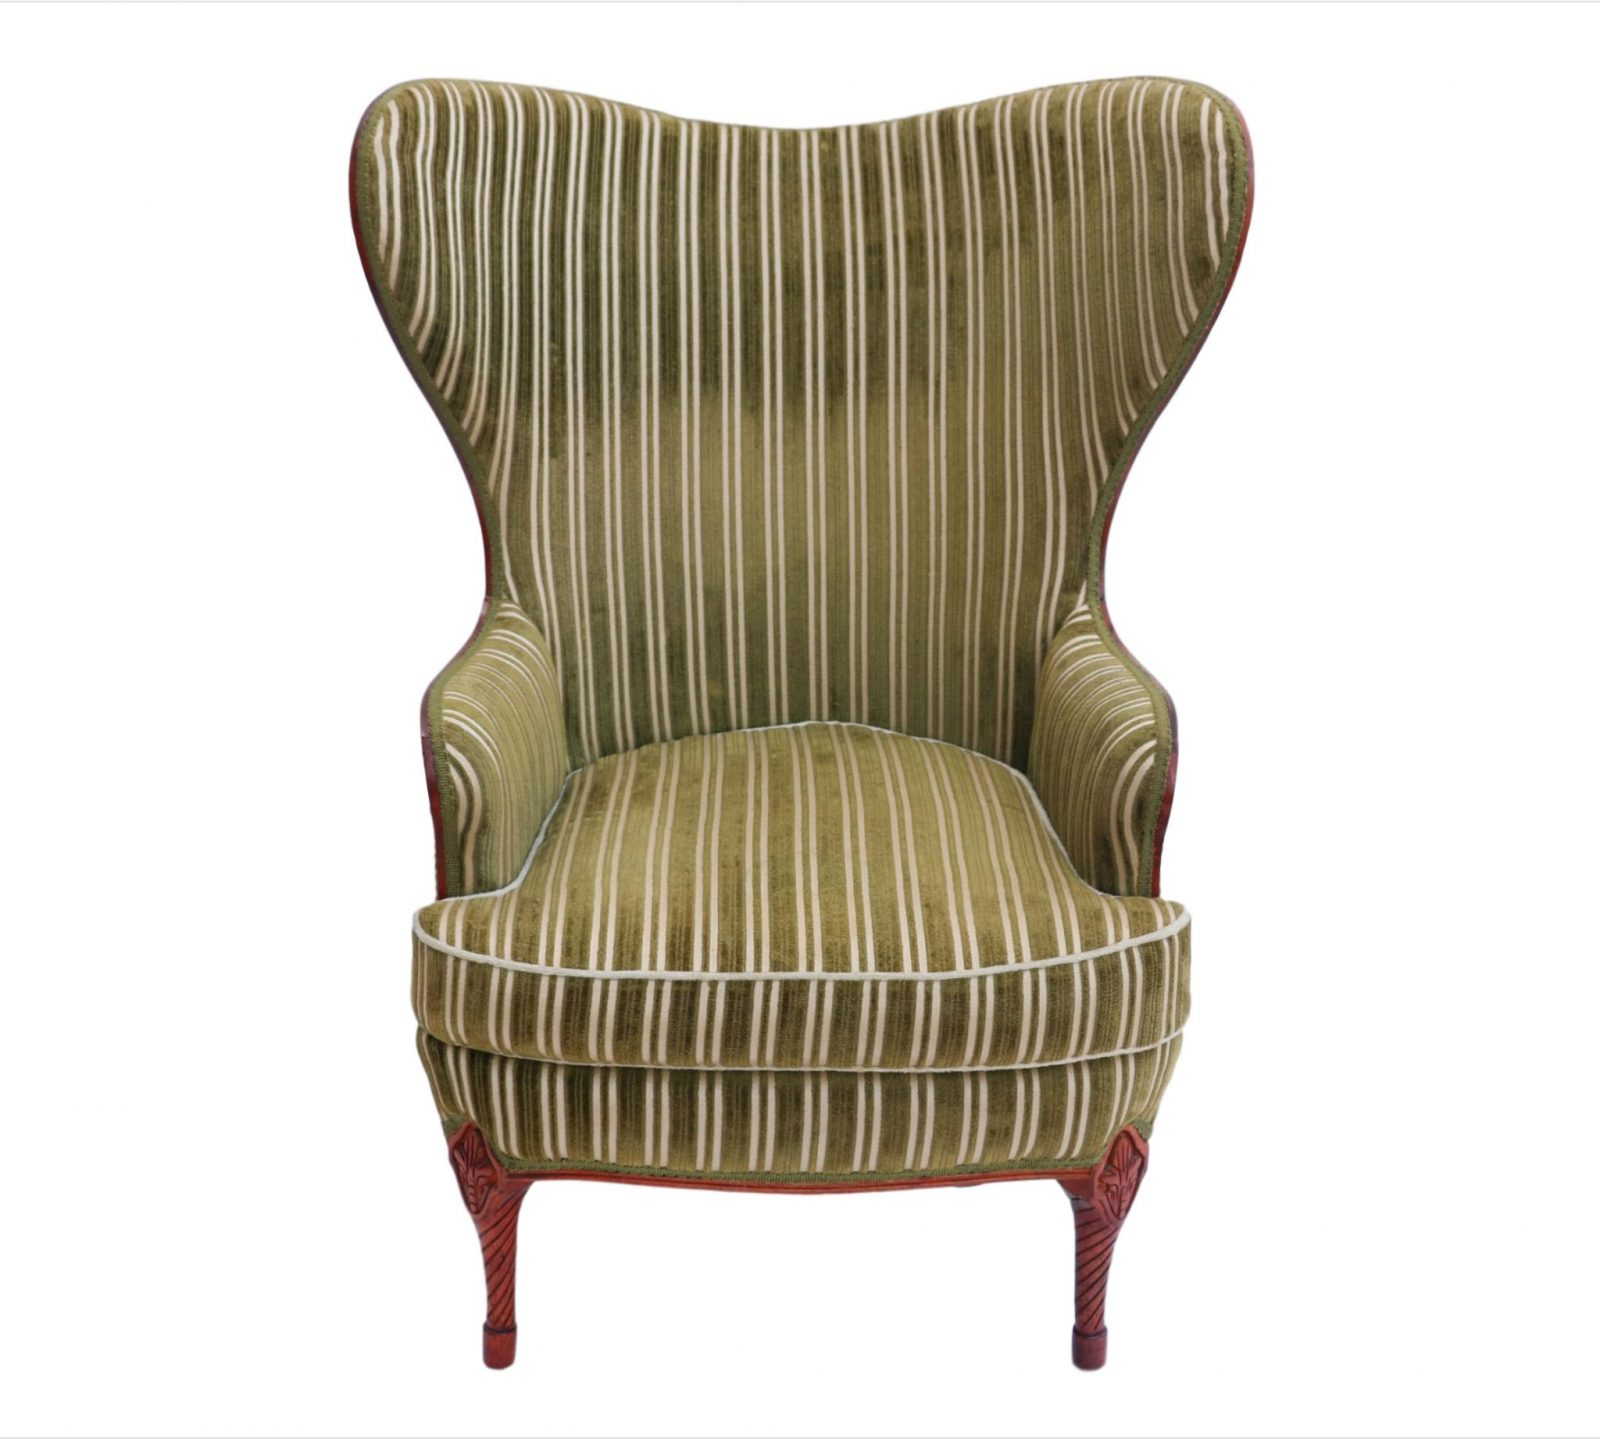 Federal Style Butterfly Wing Chair : Federal style butterfly wing chair 1 from marykaysfurniture.com size 2048 x 1842 jpeg 250kB